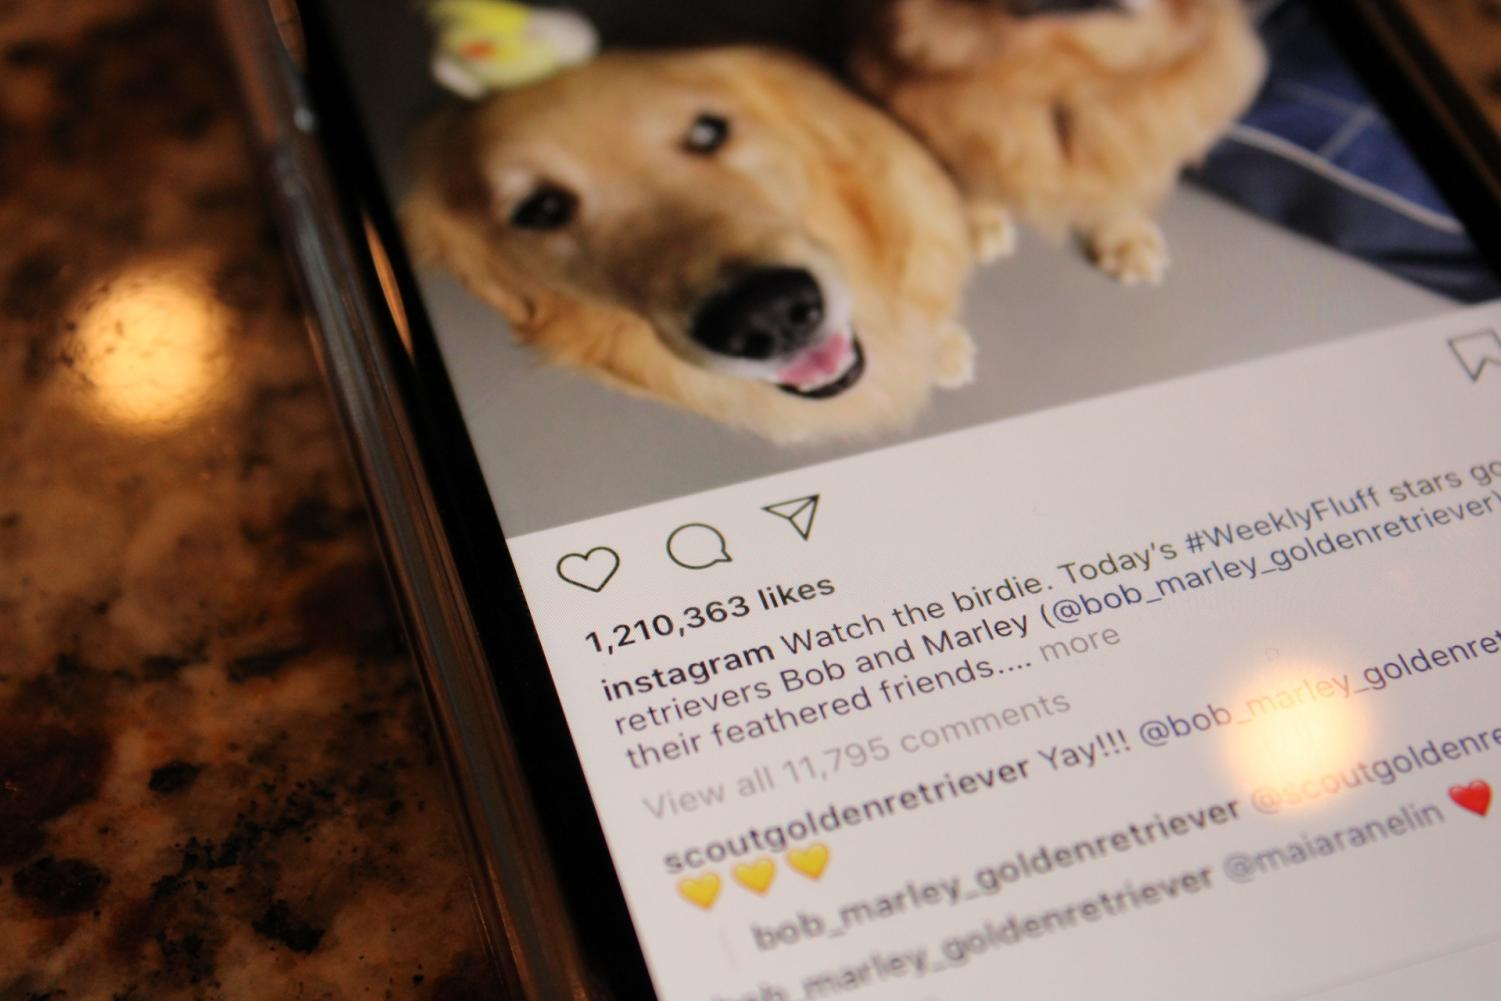 One of Instagram's social media posts, with over 1.2 million likes. Soon, public display of likes will be no more, according to Instagram CEO Adam Mosseri